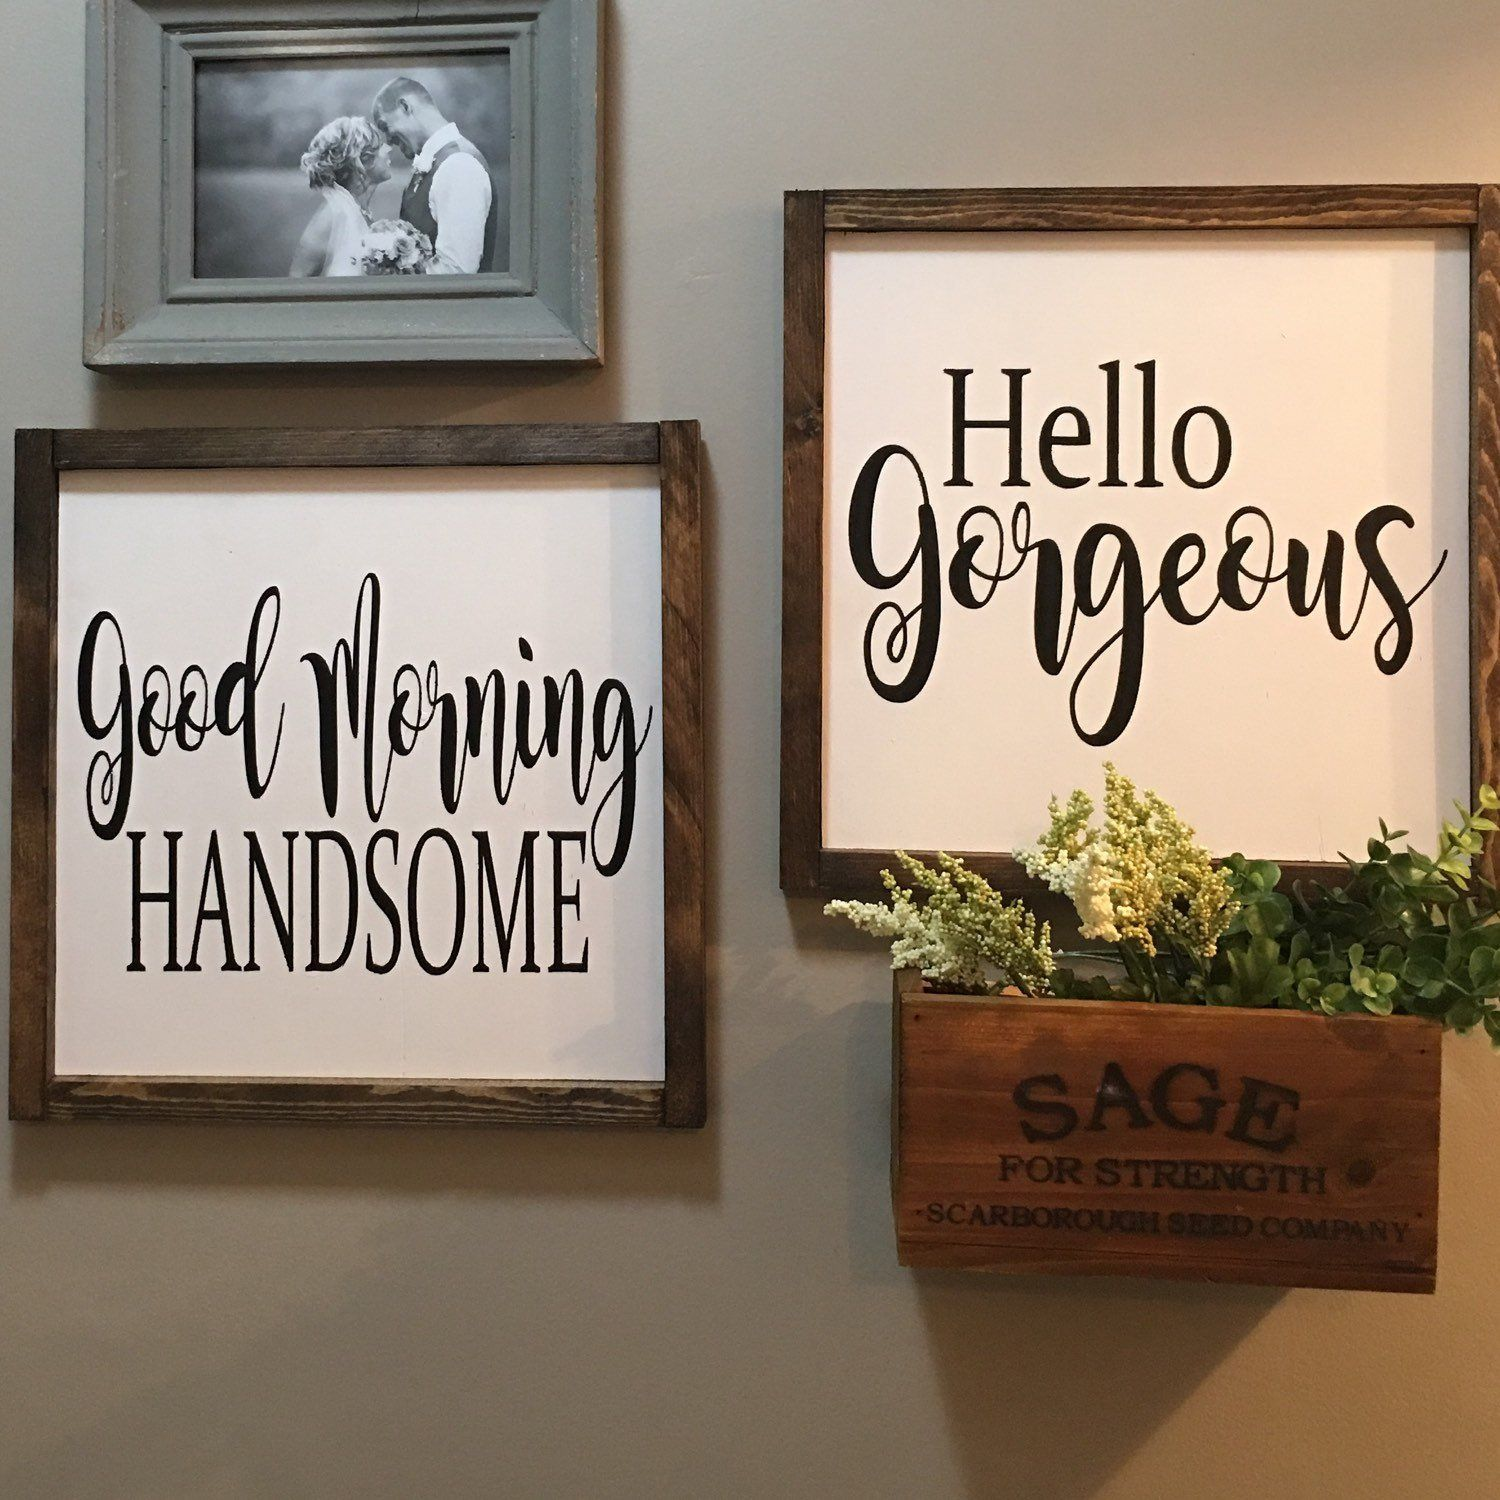 Photo of Good Morning Handsome   Hello Gorgeous  Wood Sign  Hand Painted Wood Sign   Farmhouse Sign   Farmhouse Decor